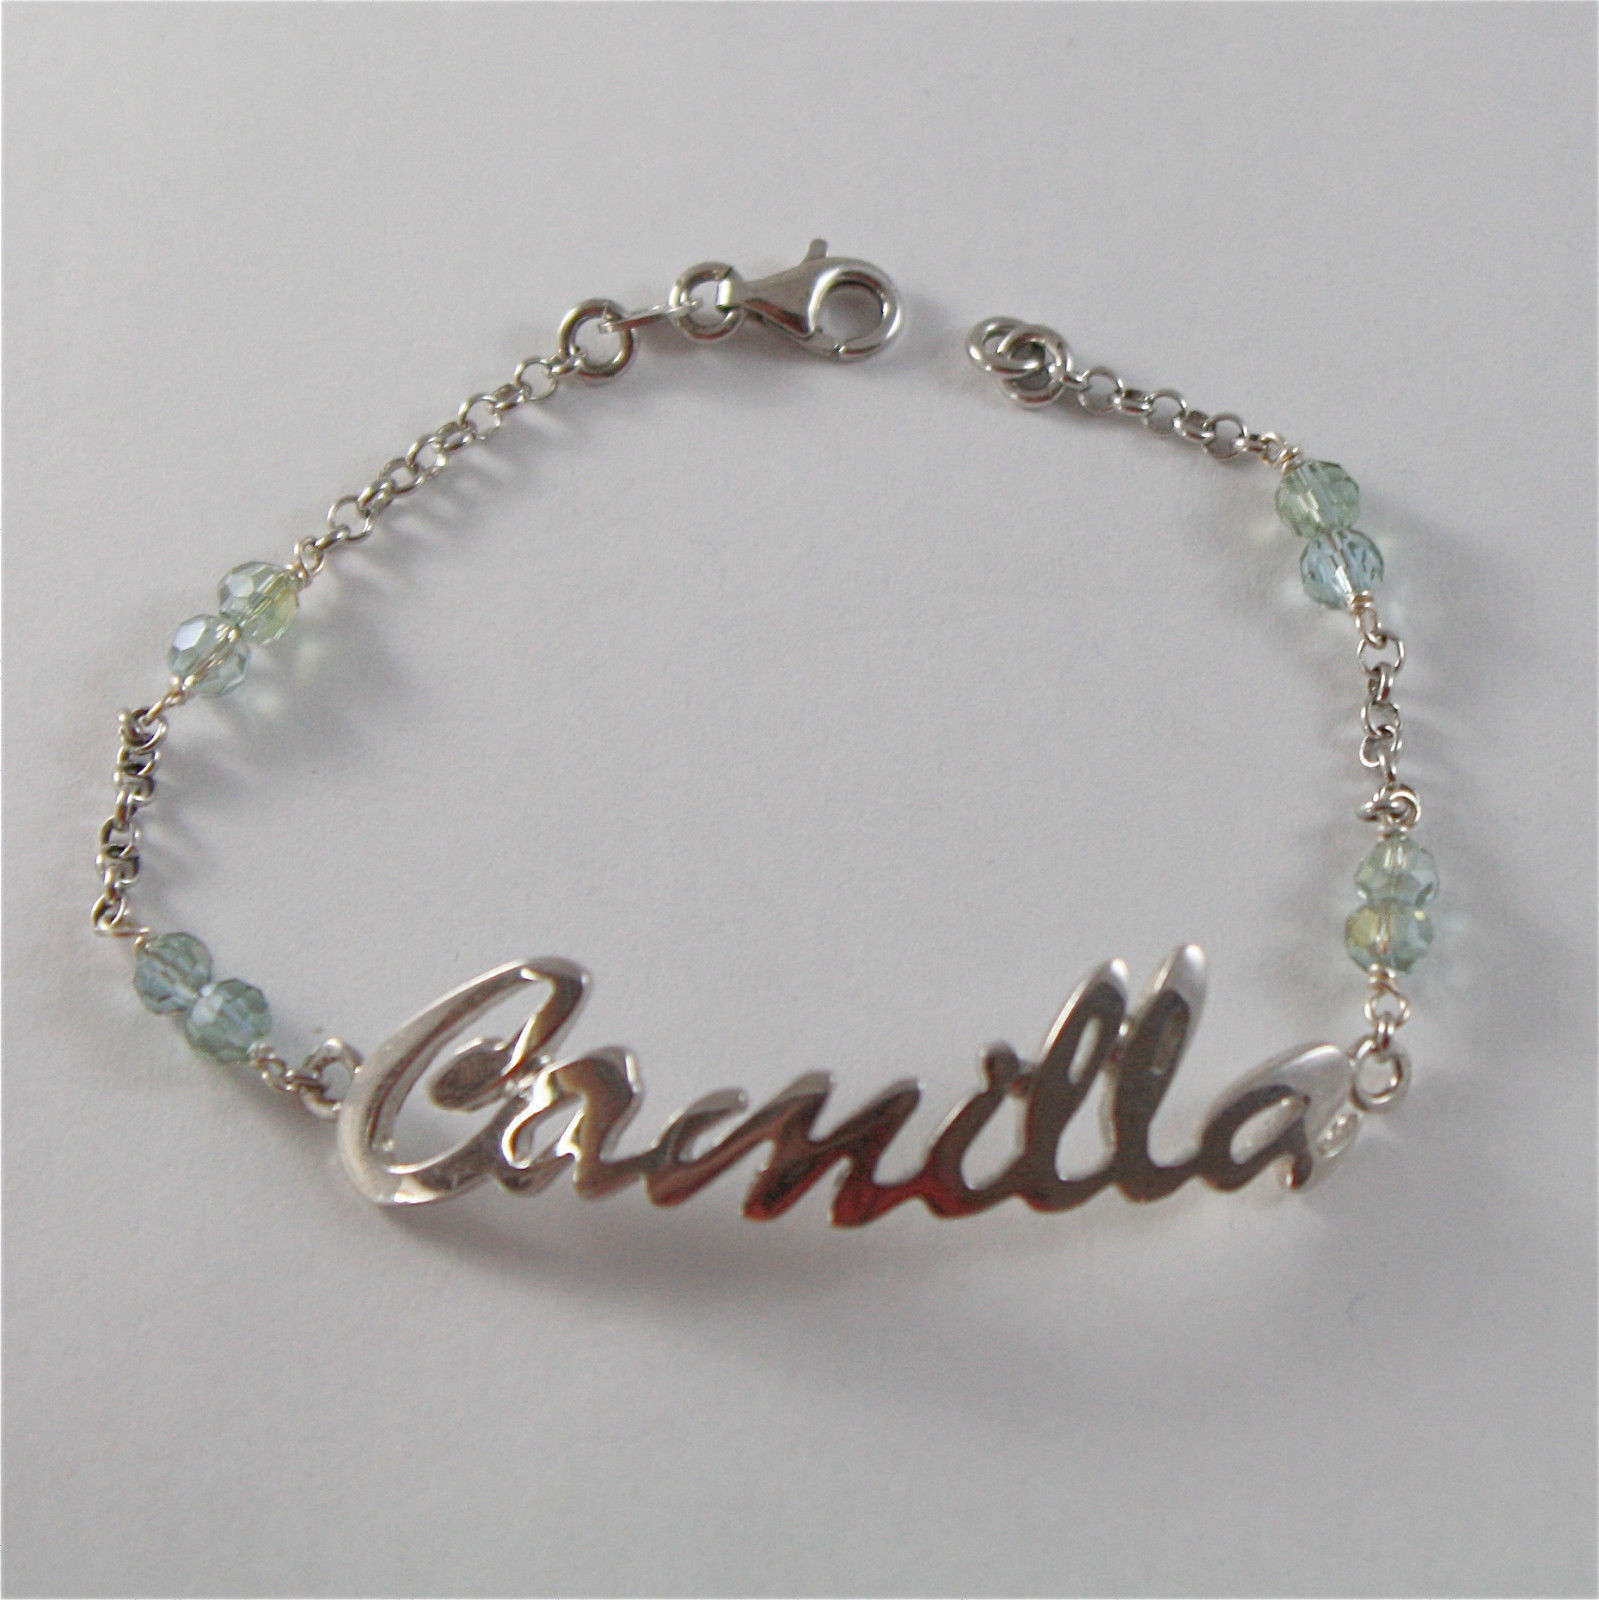 925 SILVER BRACELET WITH NAME CAMILLA AND CUBIC ZIRCONIA MADE IN ITALY 79,00 USD